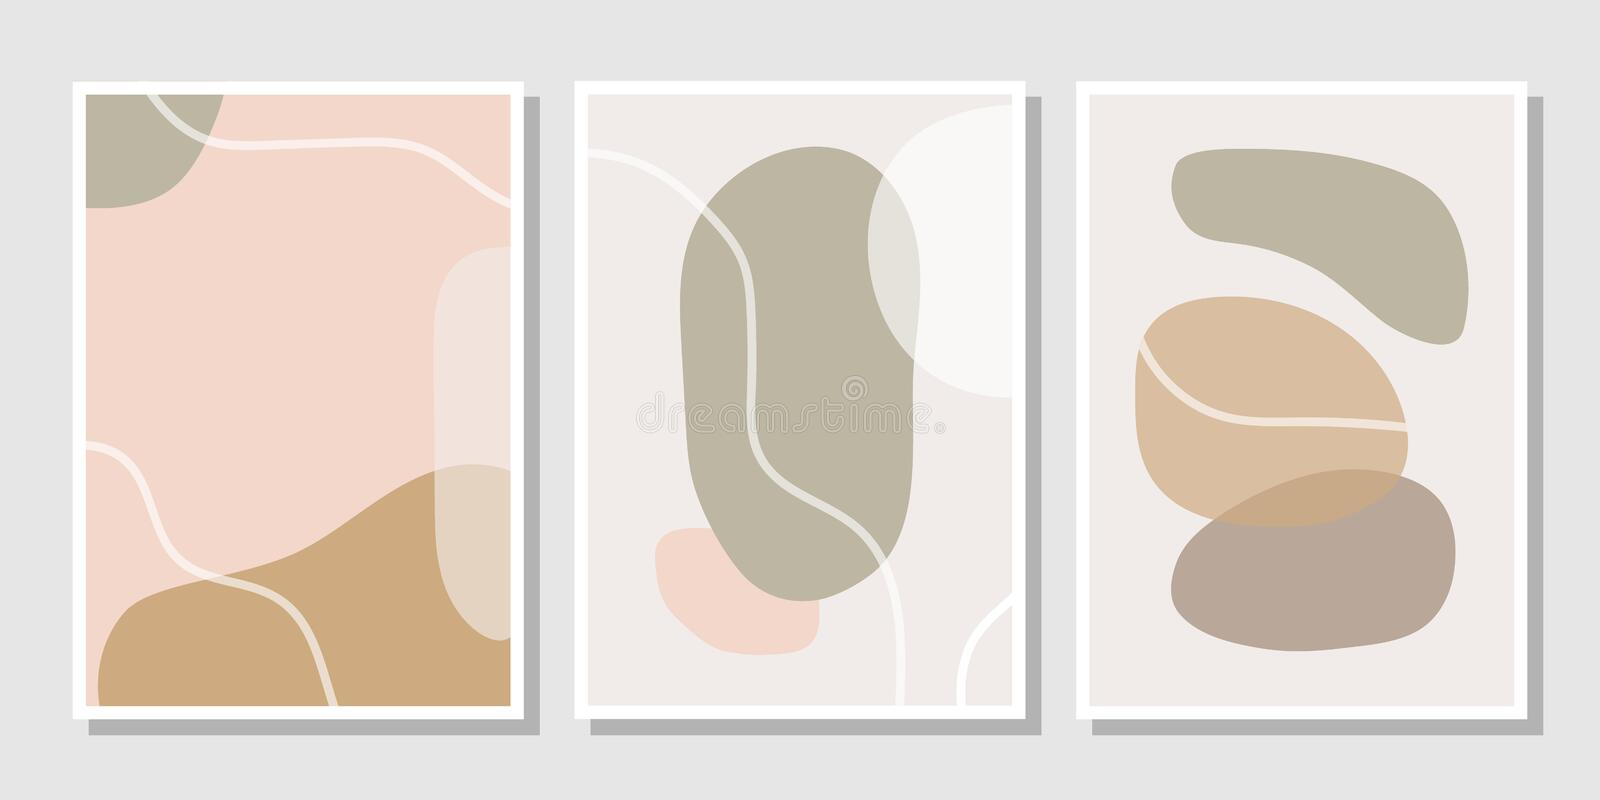 Set of stylish templates with abstract shapes in pastel colors. Contemporary collage style for invitations, flyers, cards, poster, magazine cover, etc royalty free illustration